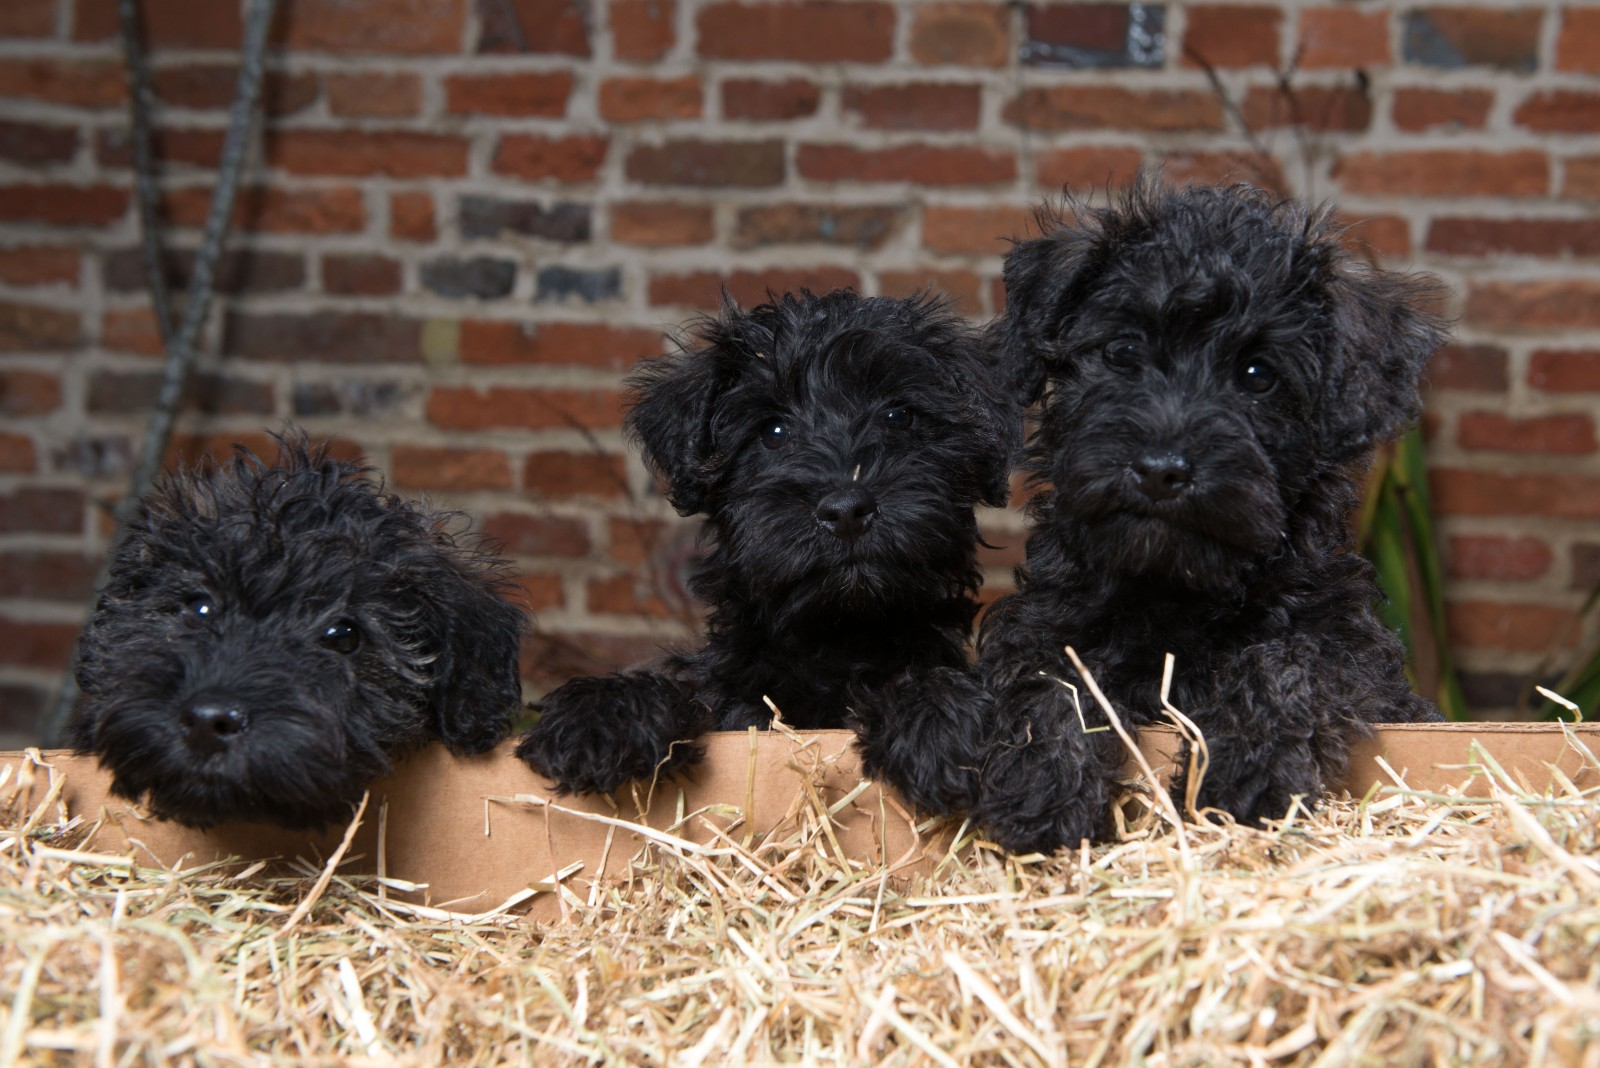 Abandoned puppies Parsnip, Spud and Sprout are found in a stable